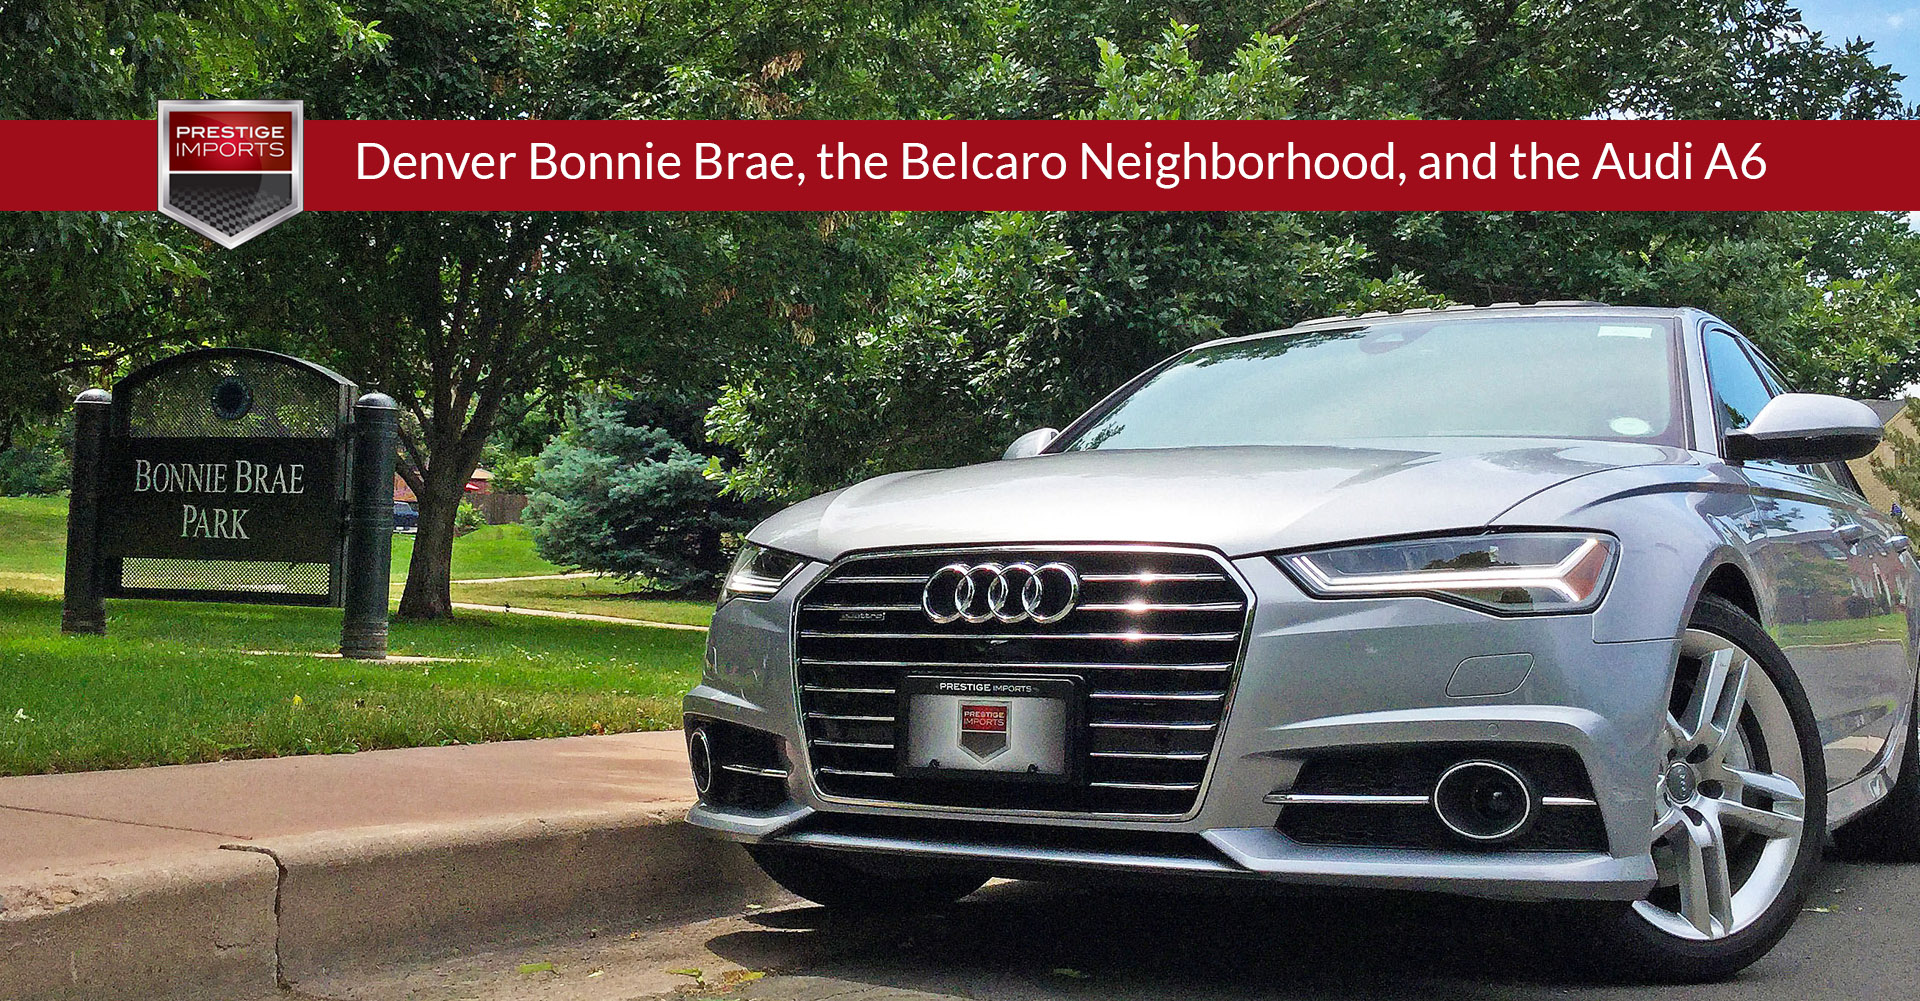 Denver Bonnie Brae The Belcaro Neighborhood And The Audi A6